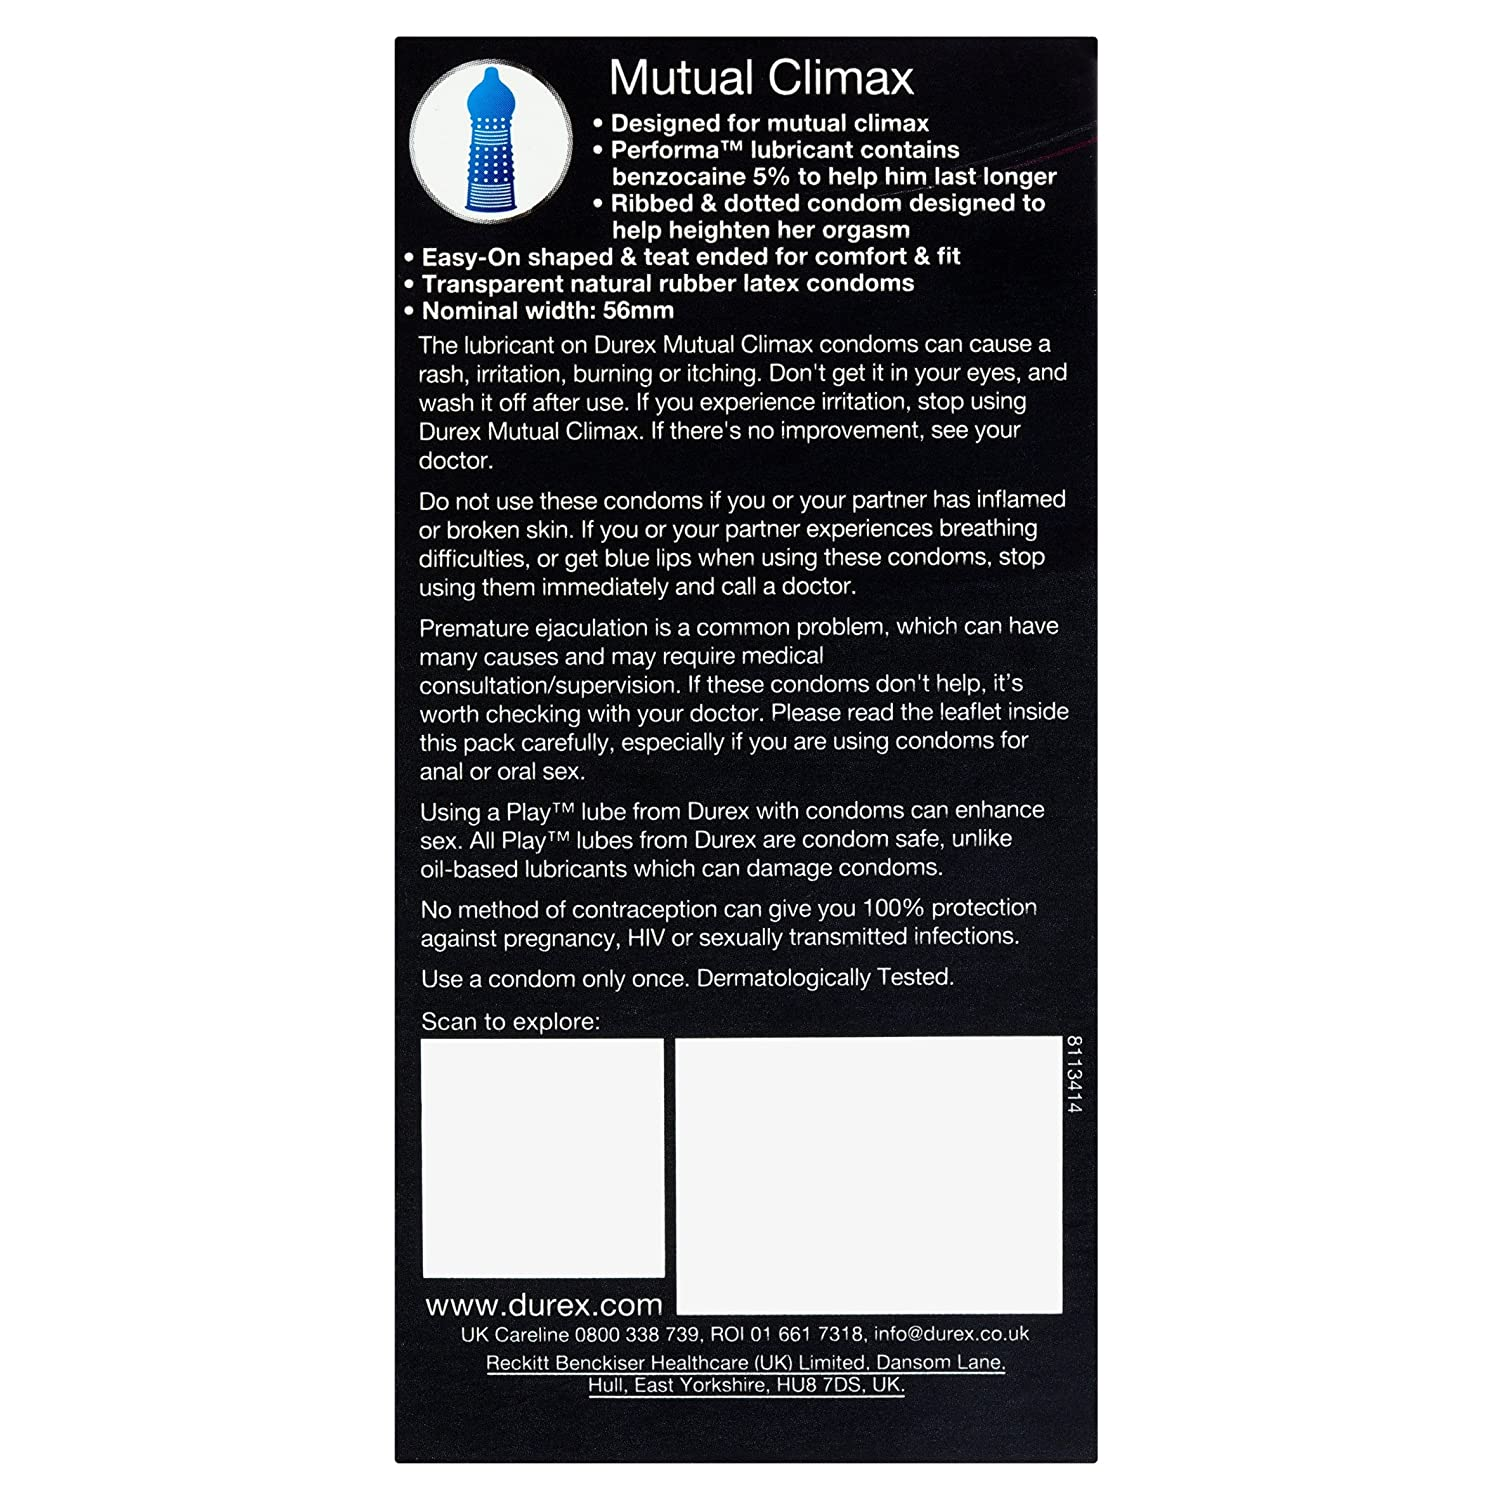 color climax child sex Amazon.com: Durex Mutual Climax Condoms - Pack of 14: Health & Personal Care